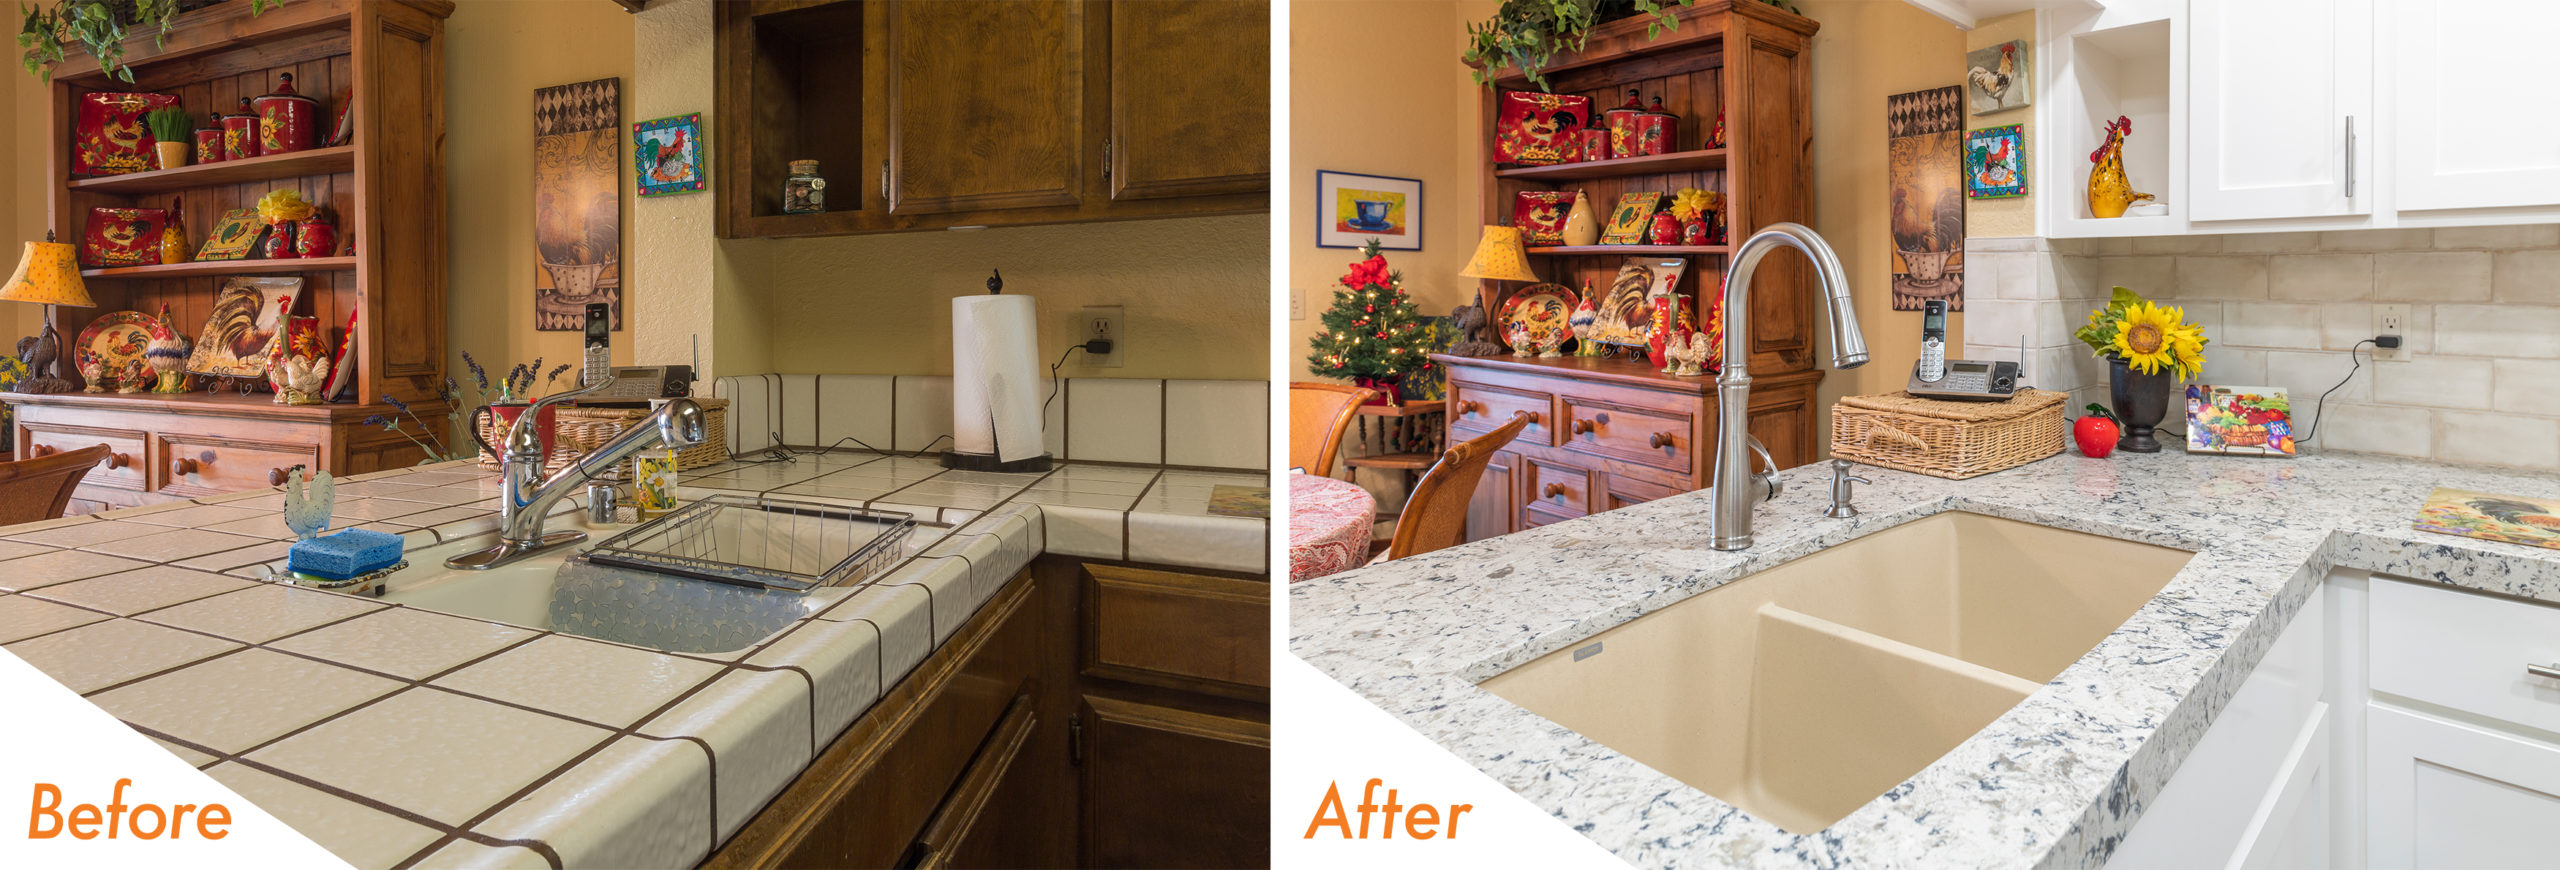 Before & After Kitchen Remodel